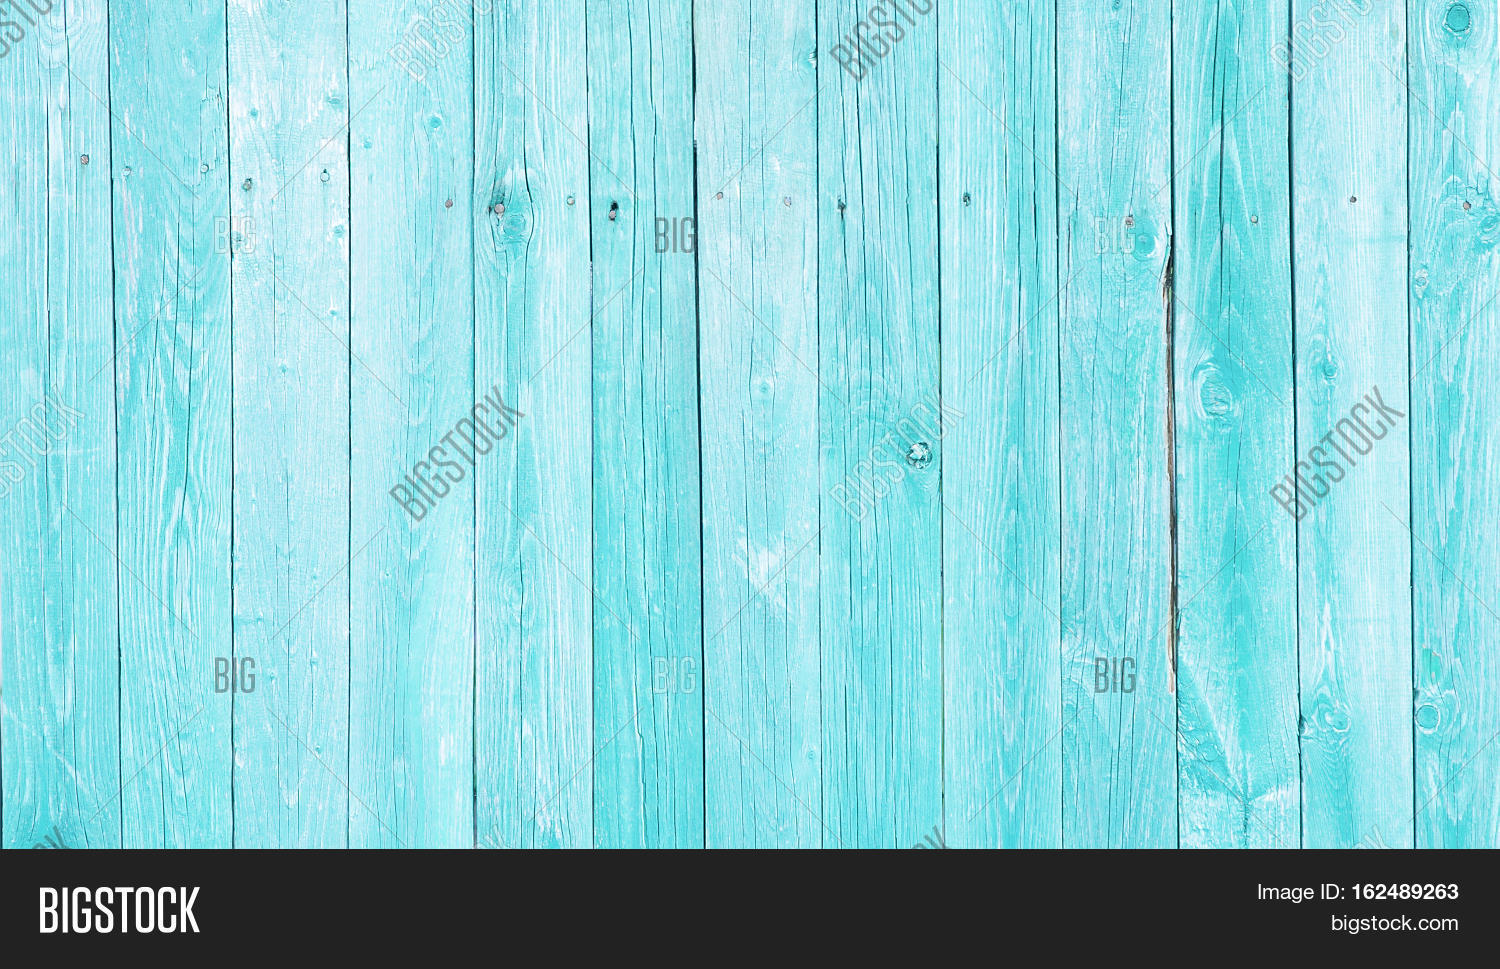 Natural Rustic Old Wood Board Wall Shabby Turquoise Color Background Wooden Vintage Style Texture